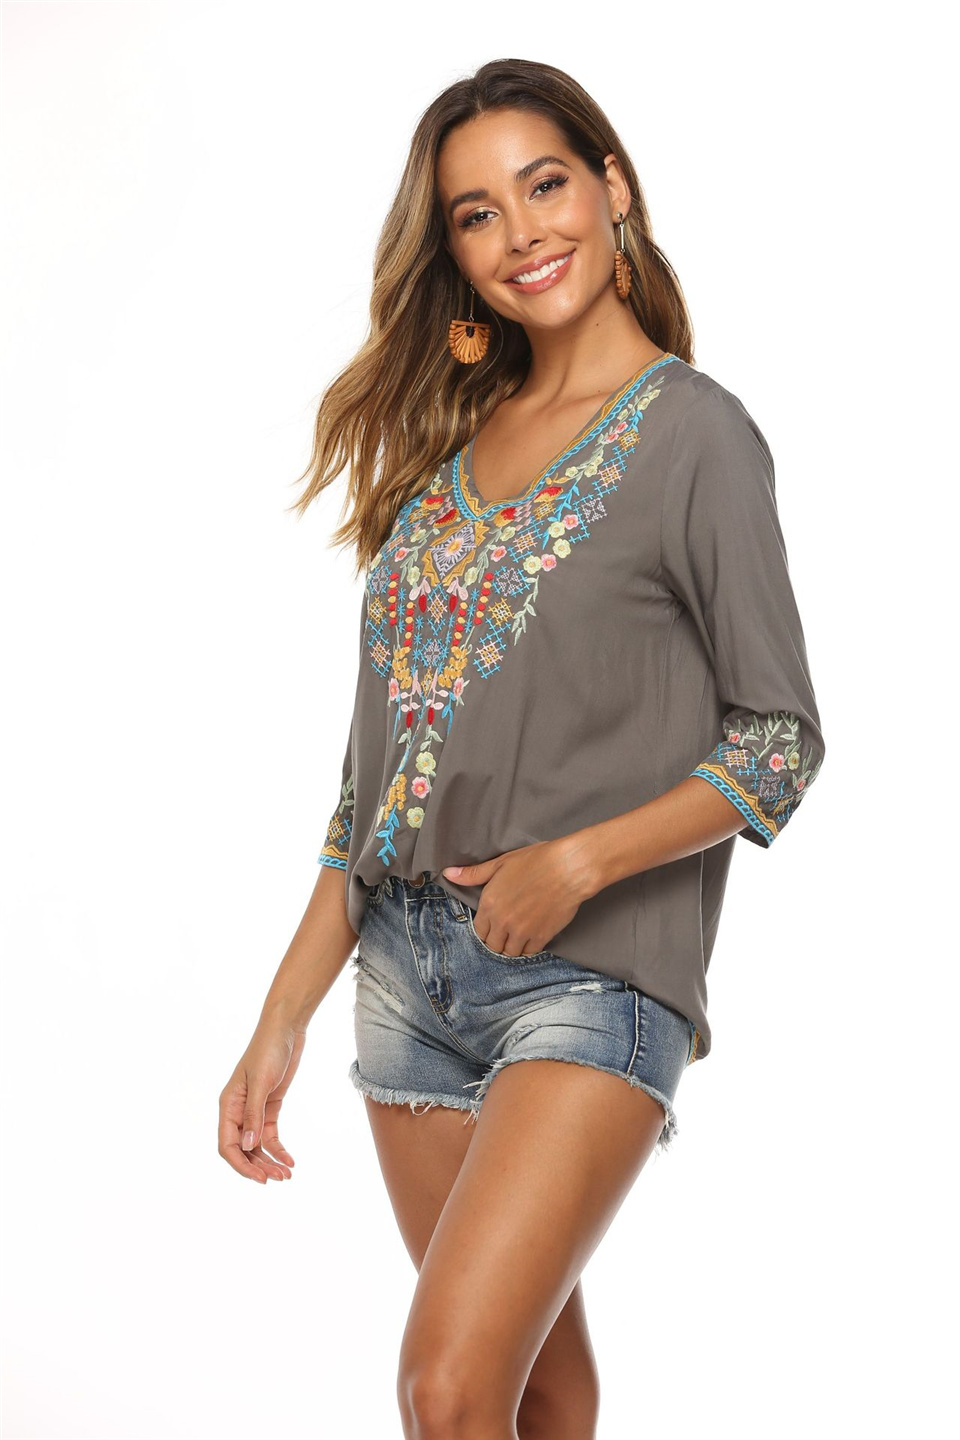 USD CORUJA V-neck Tops 5